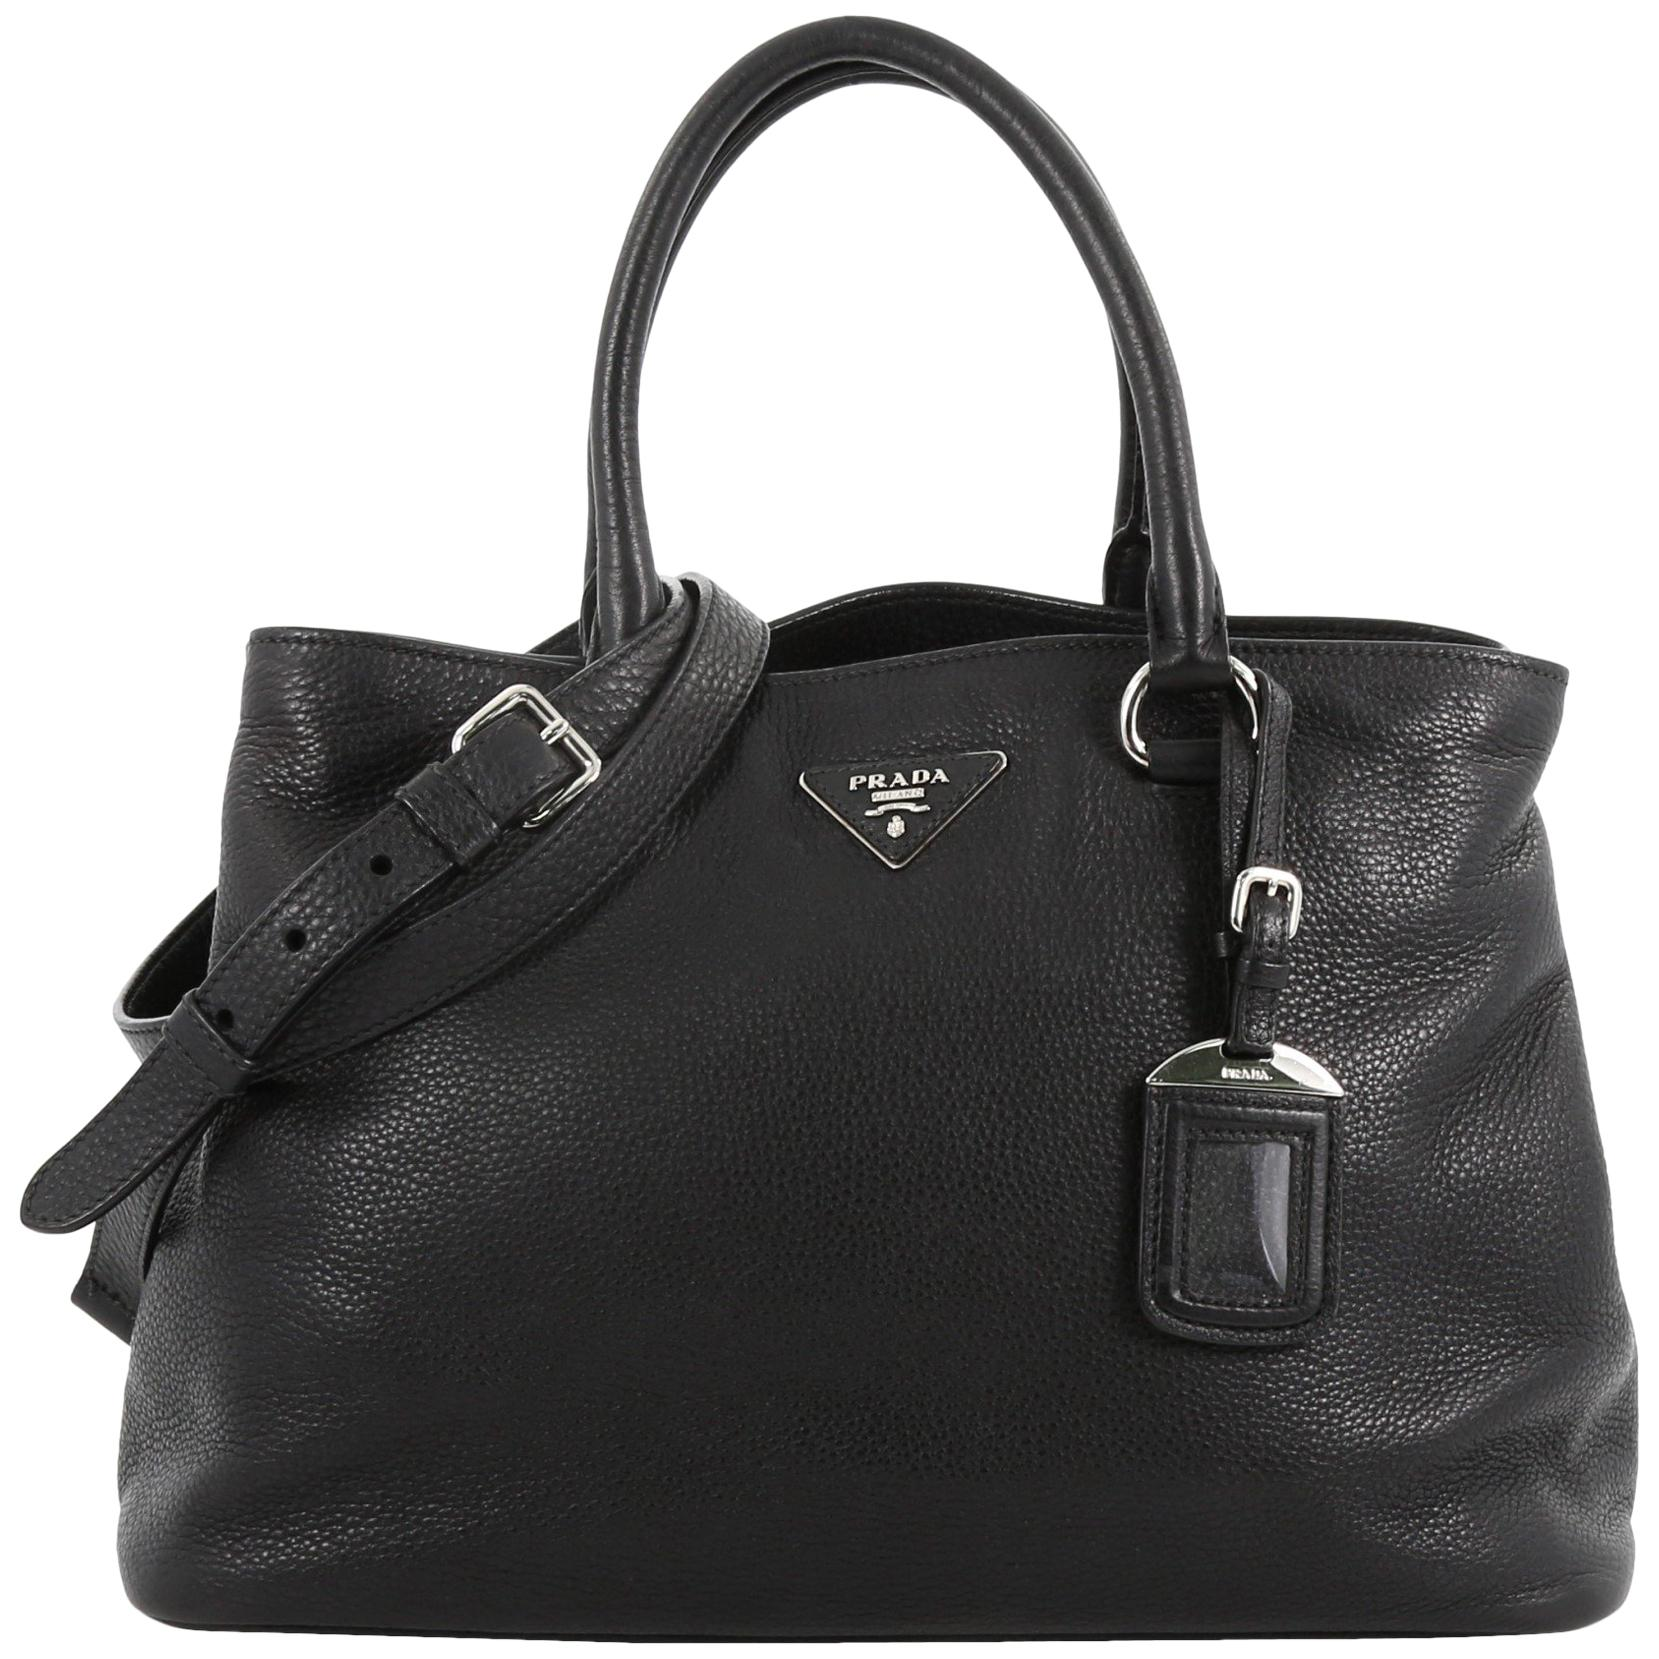 796a40007f27 coupon prada tote calf raises c6f61 e4c29